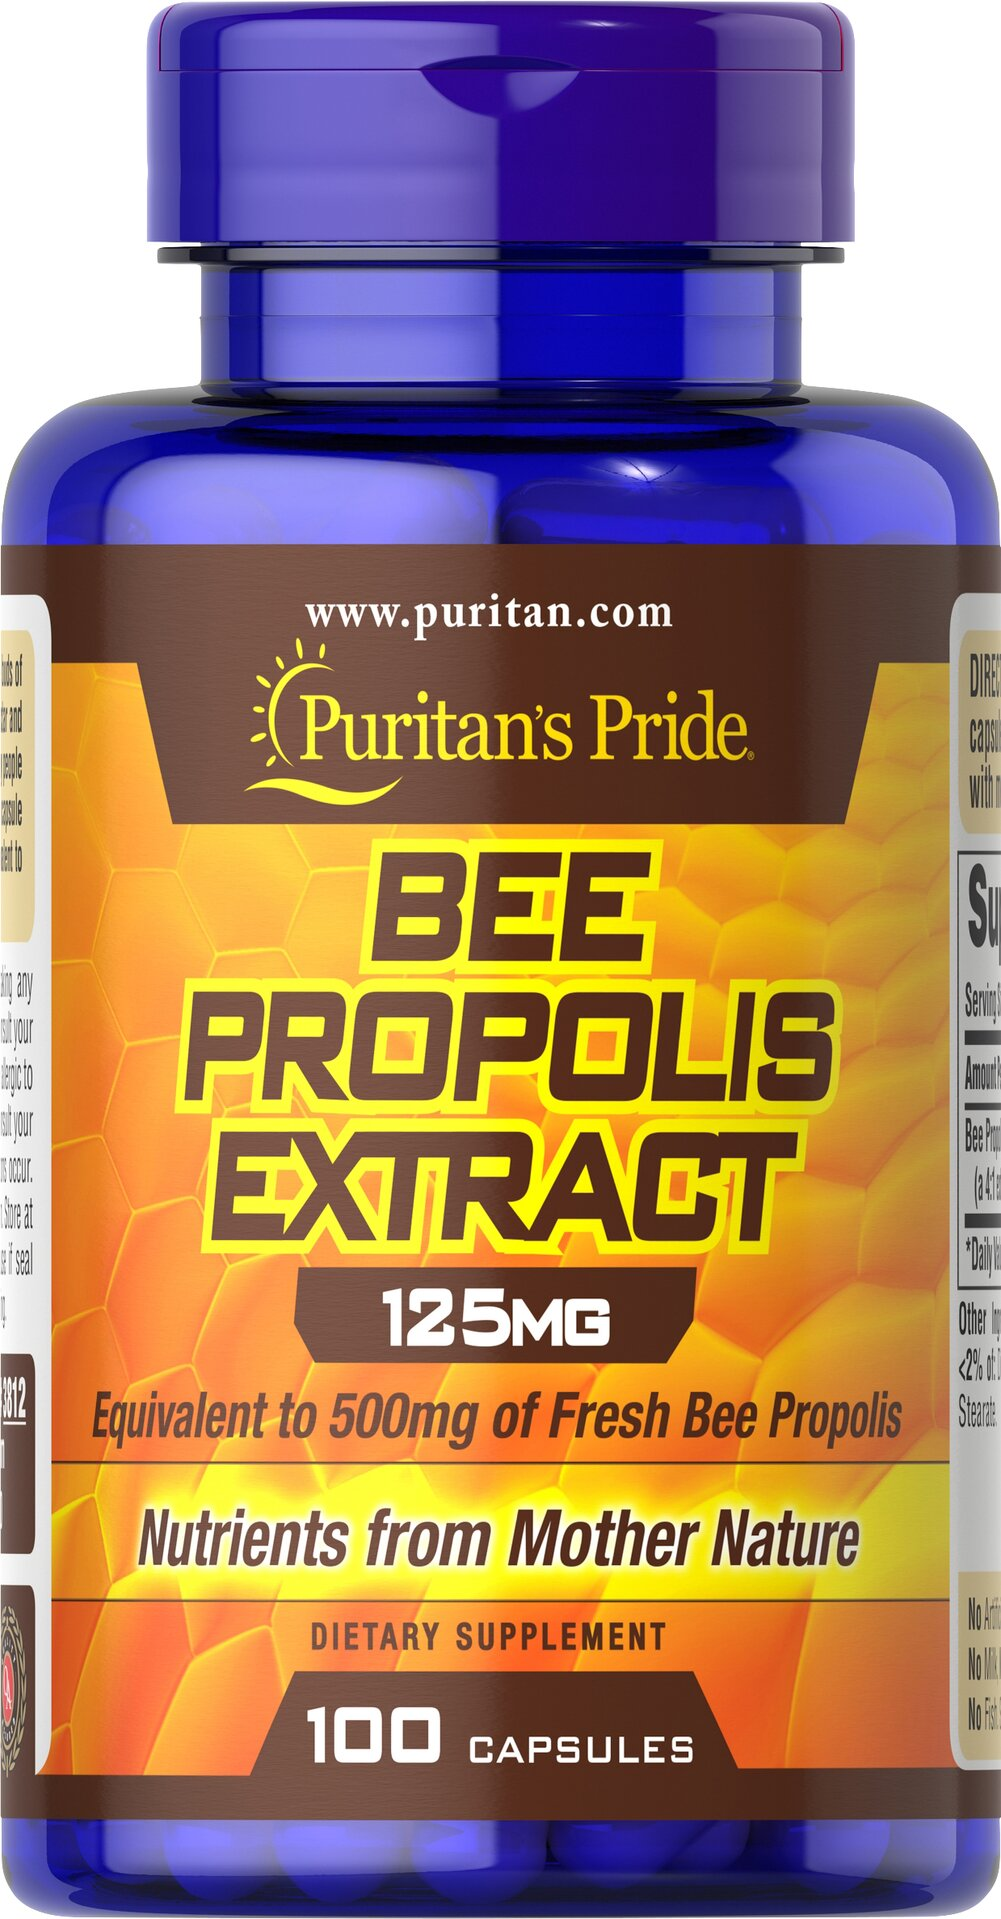 Bee Propolis 500 mg <p>Once again, the amazing Bee has provided us with a beneficial natural food supplement rich in flavonoids, amino acids, vitamins and minerals.  Puritan's Pride offers you high quality natural Bee Propolis at incredible savings.</p> 100 Capsules 500 mg $9.59